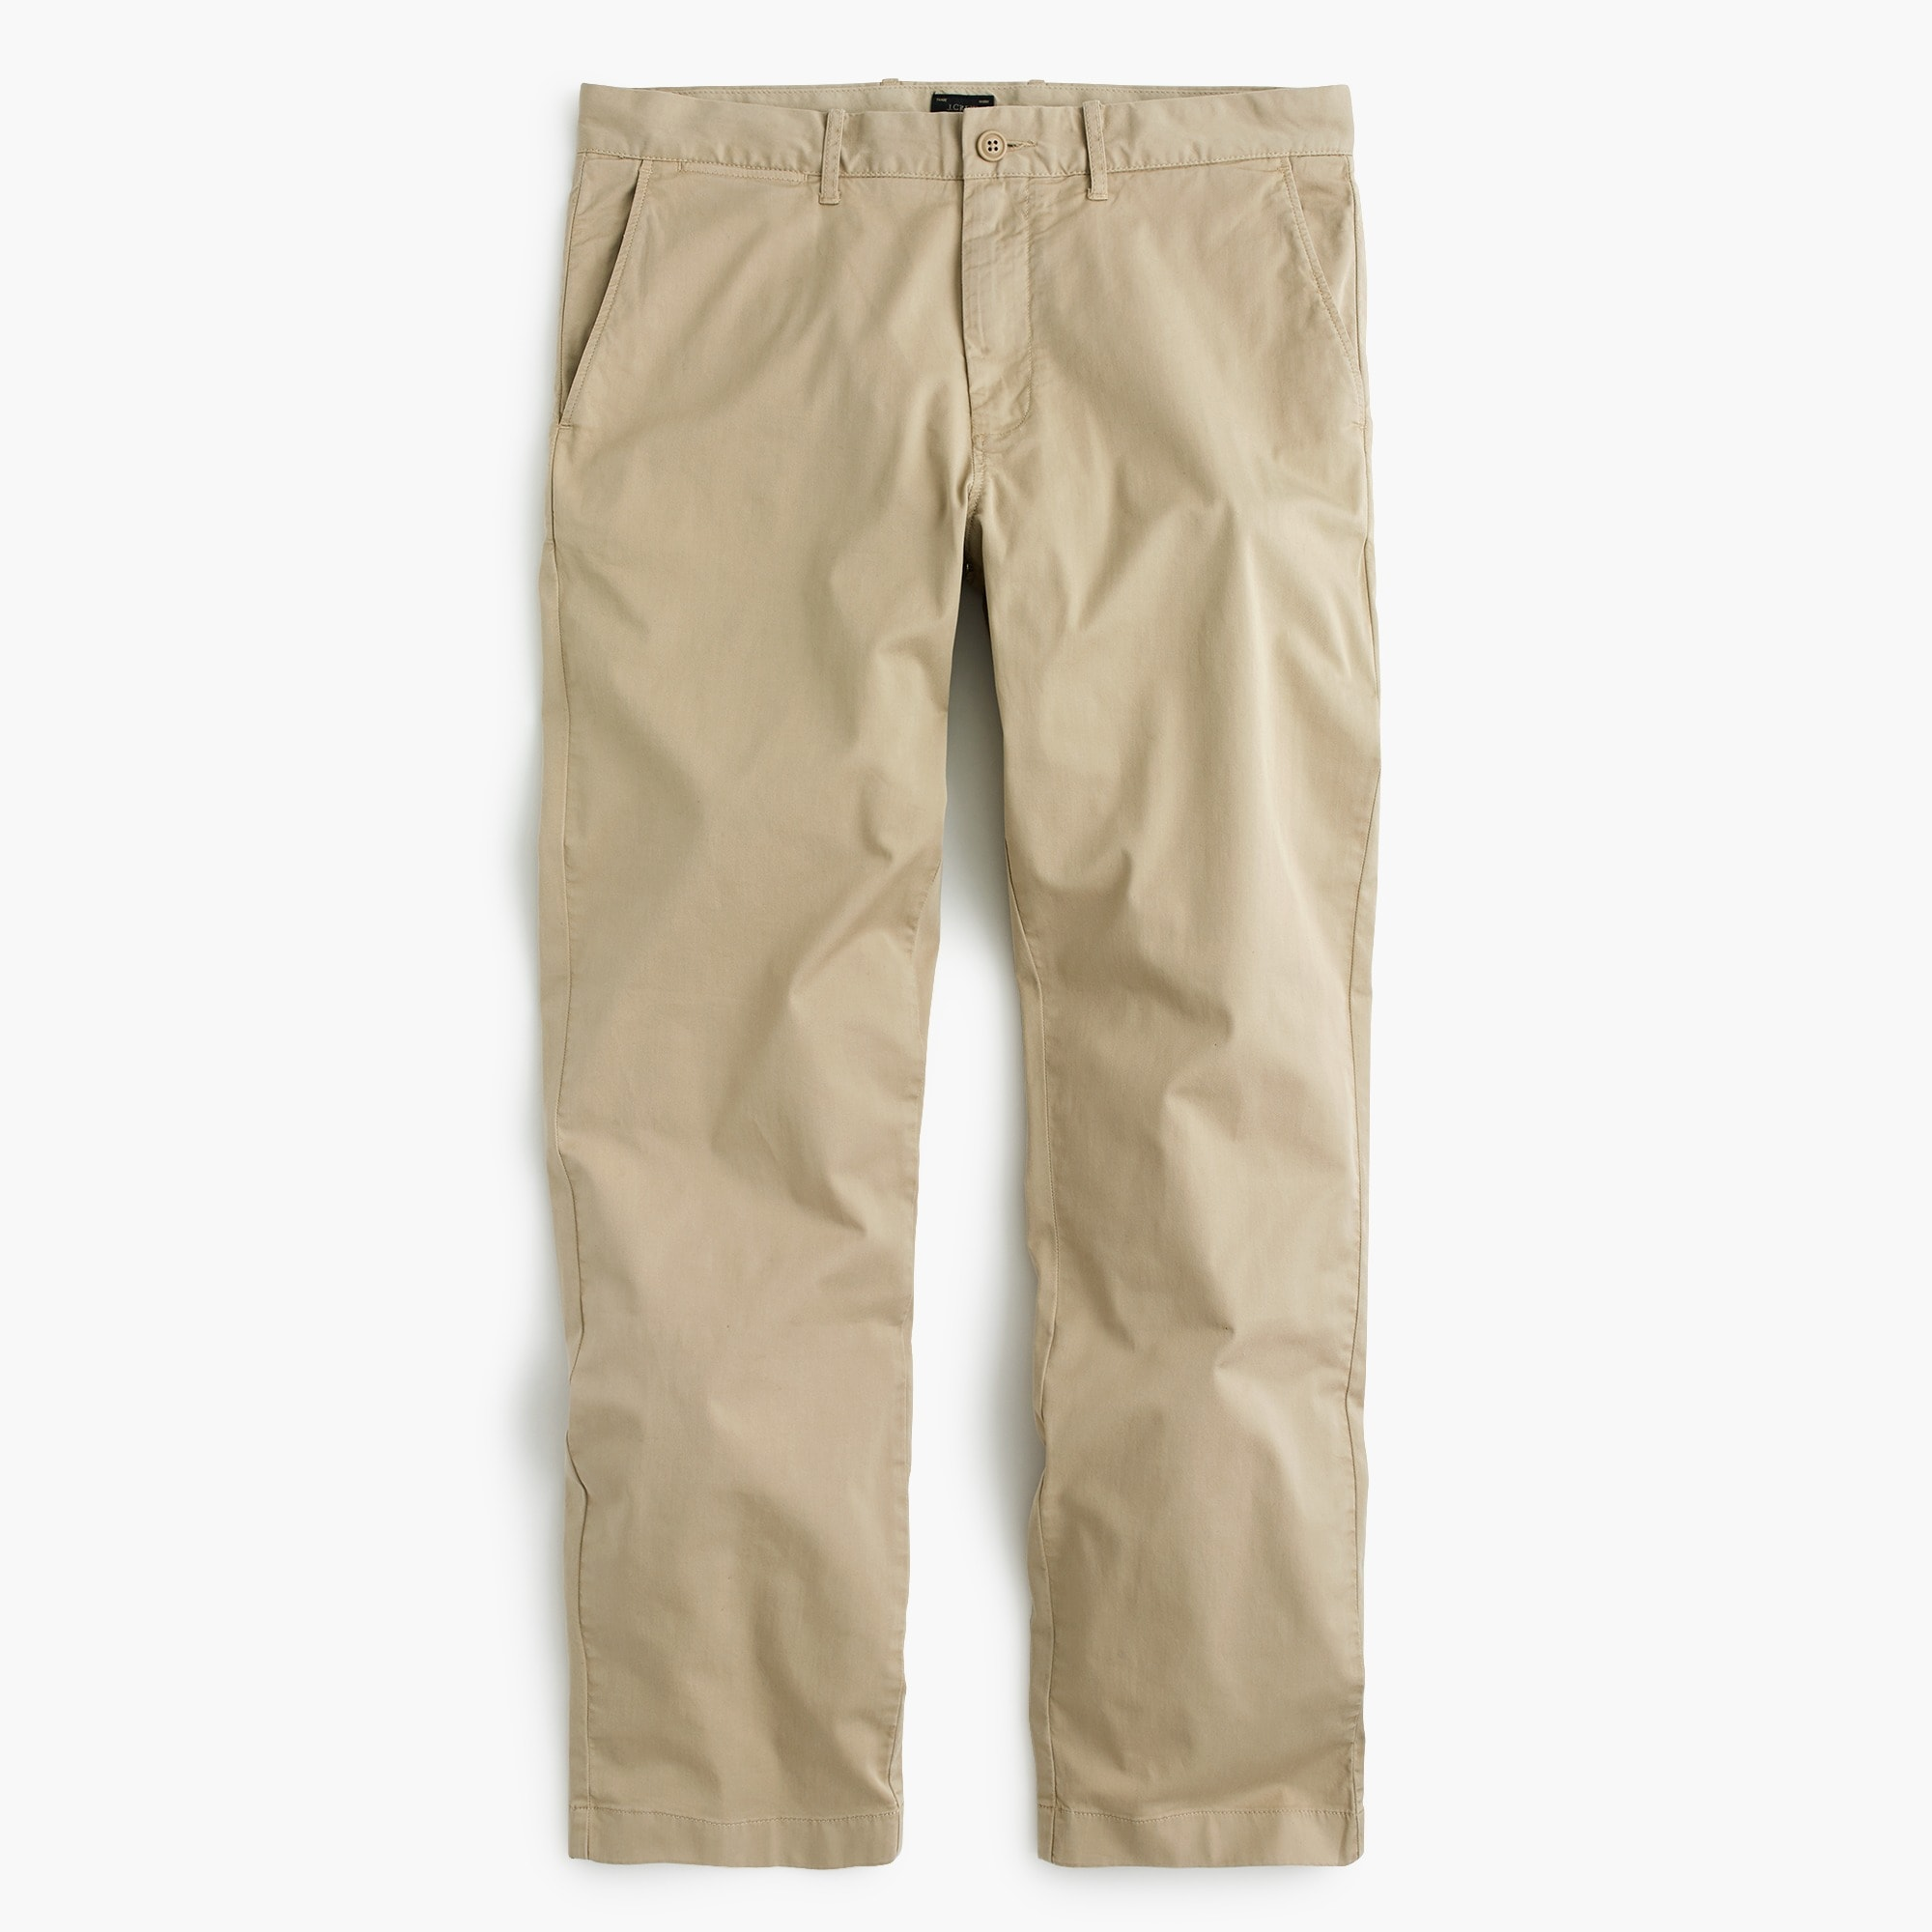 1040 athletic-fit lightweight garment-dyed stretch chino - men's pants